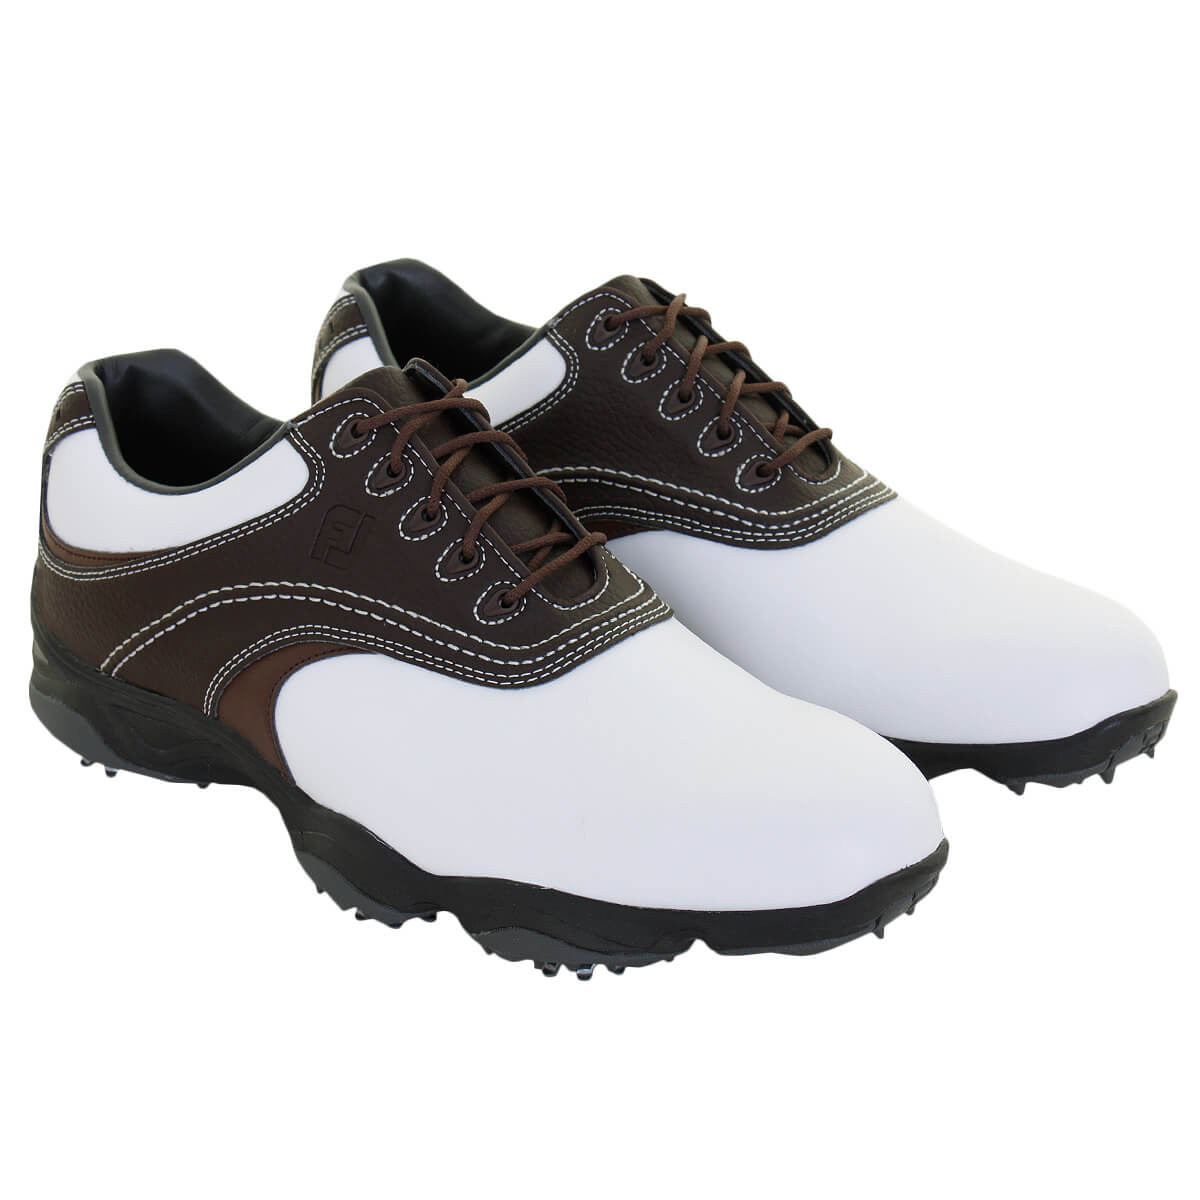 Footjoy-Mens-FJ-Originals-Leather-Waterproof-Spiked-Golf-Shoes-38-OFF-RRP thumbnail 15